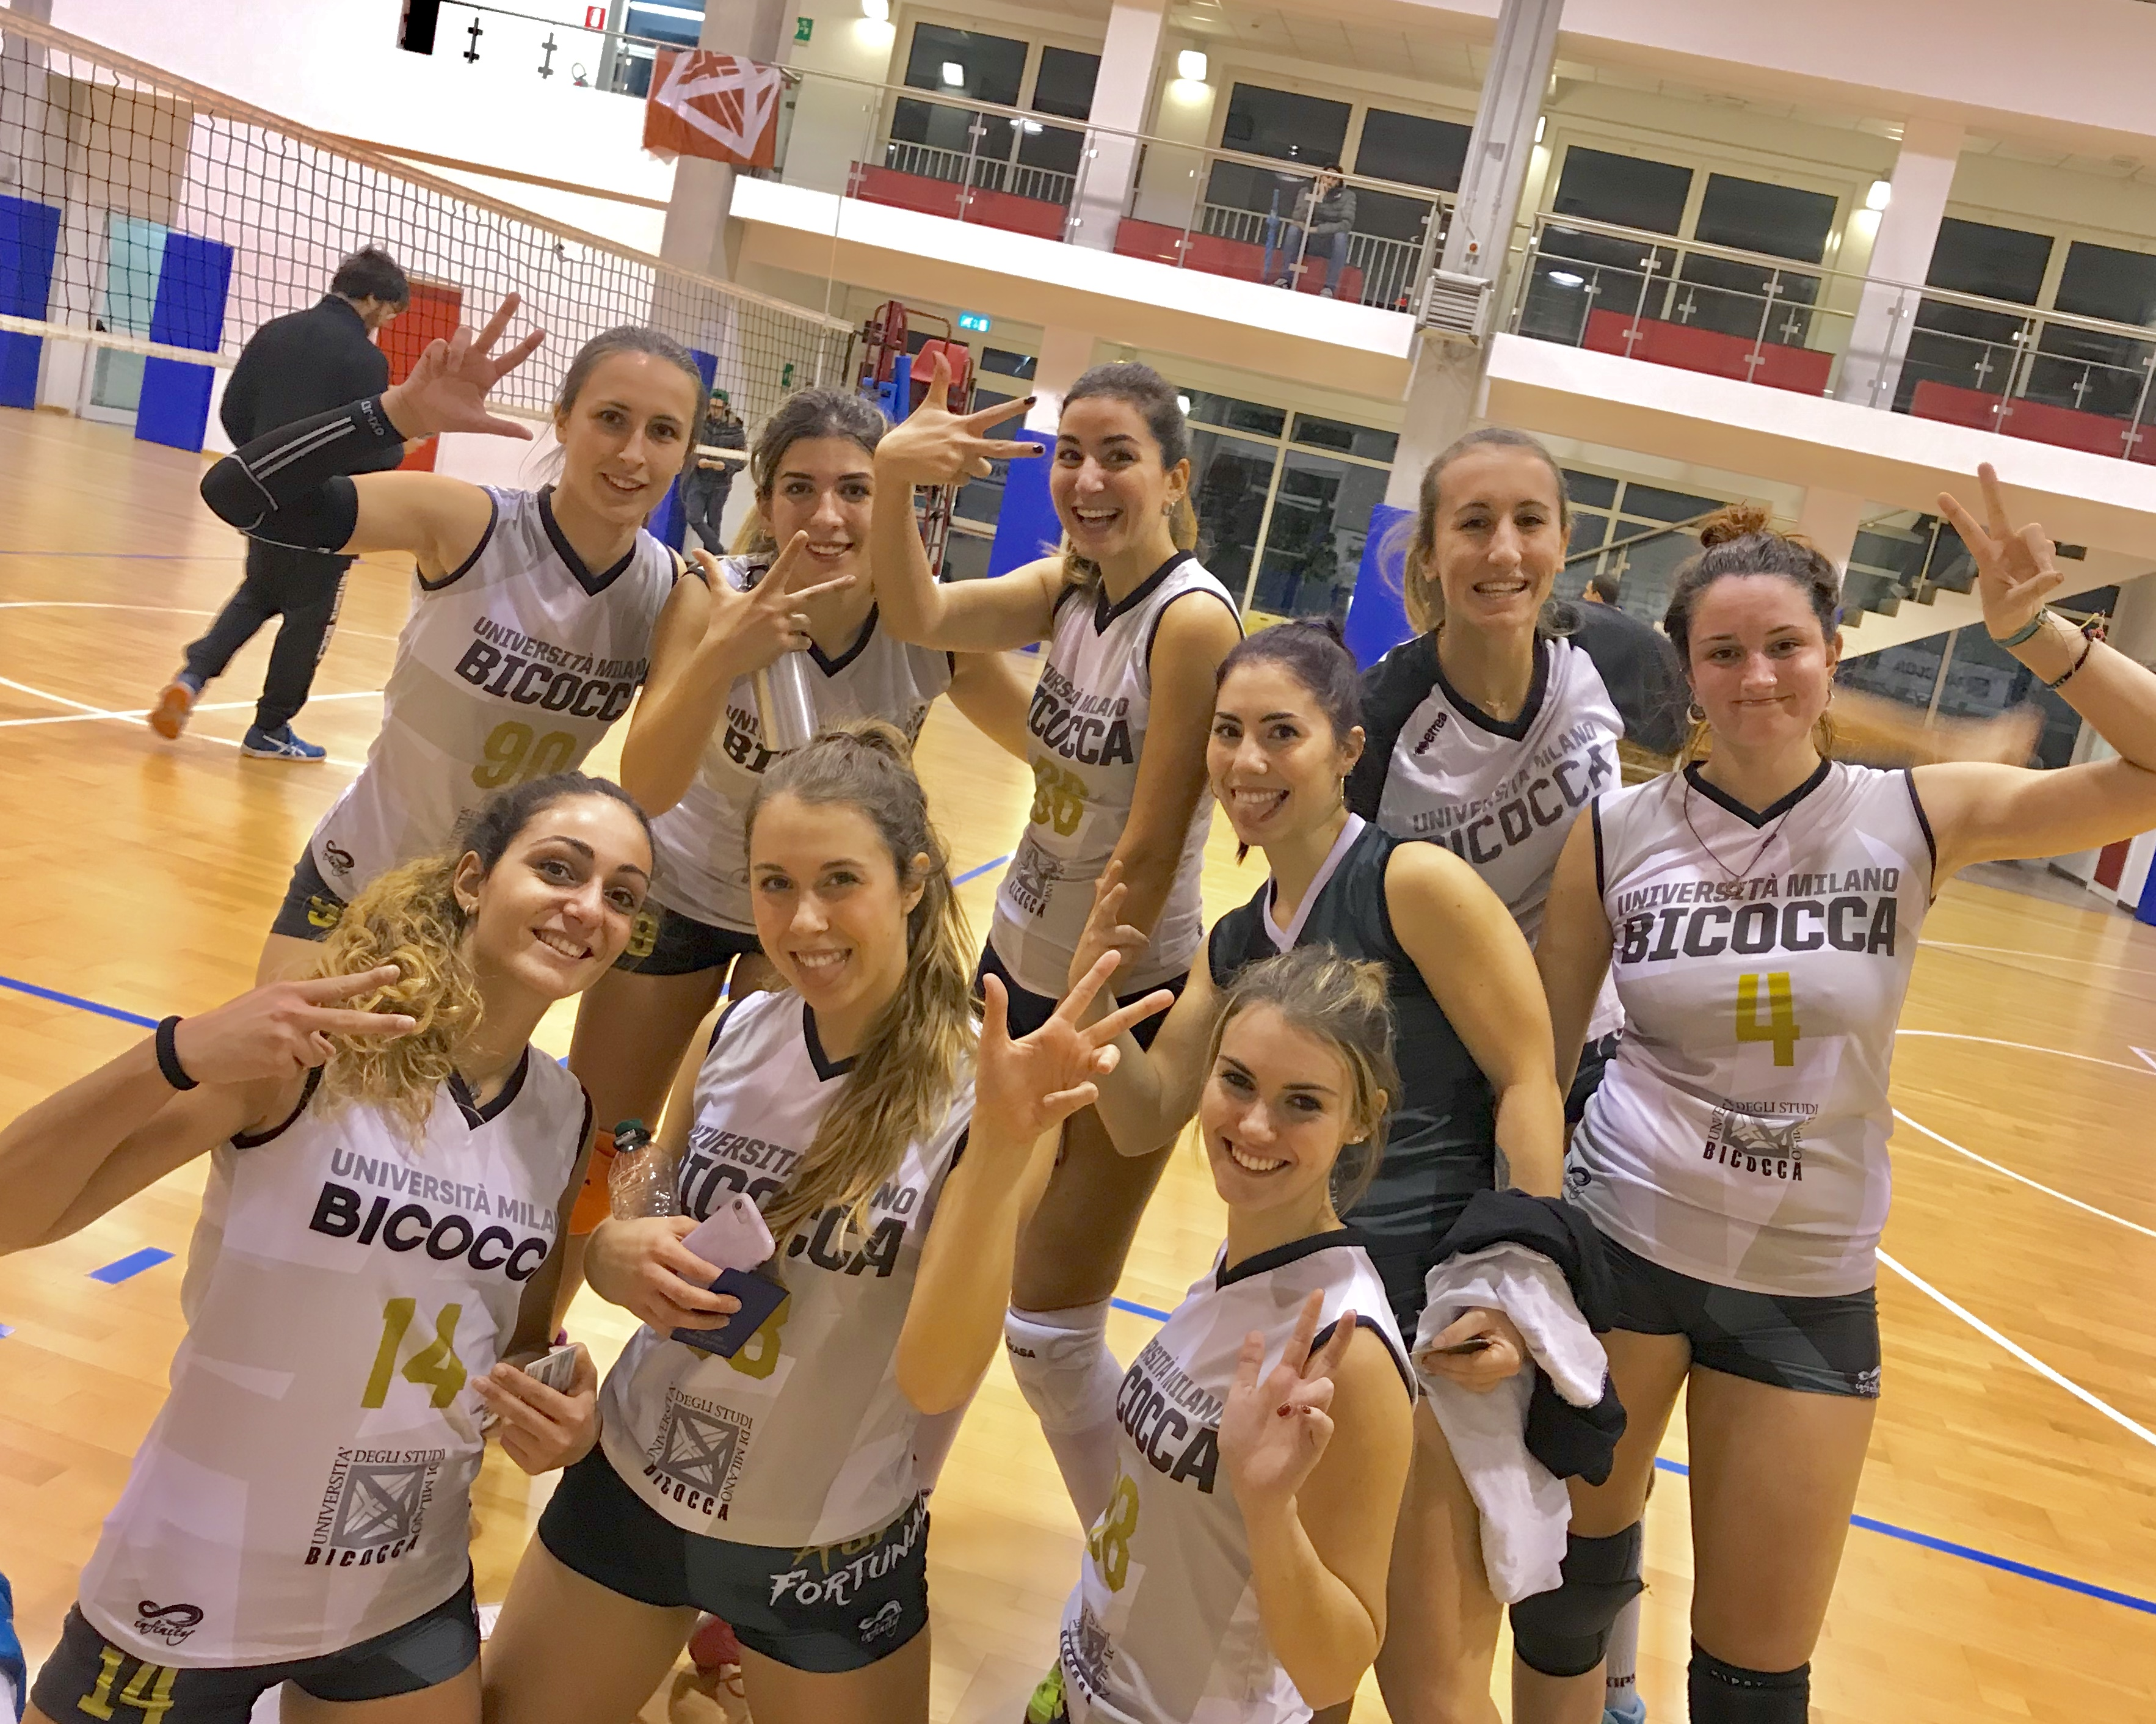 CUS Bicocca - Volley universitario femminile 2017/18